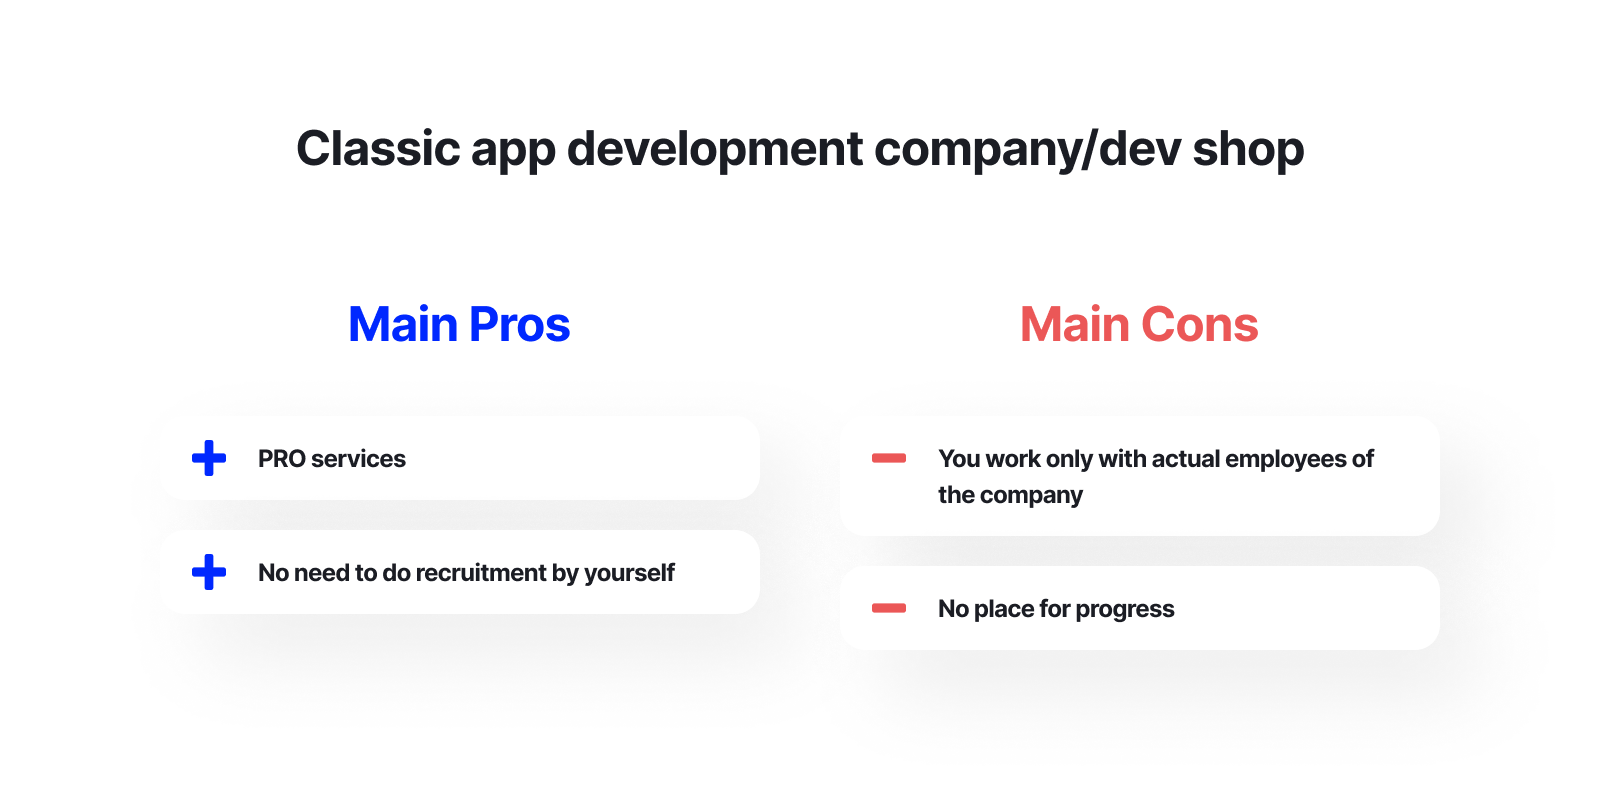 Classic app development company pros and cons